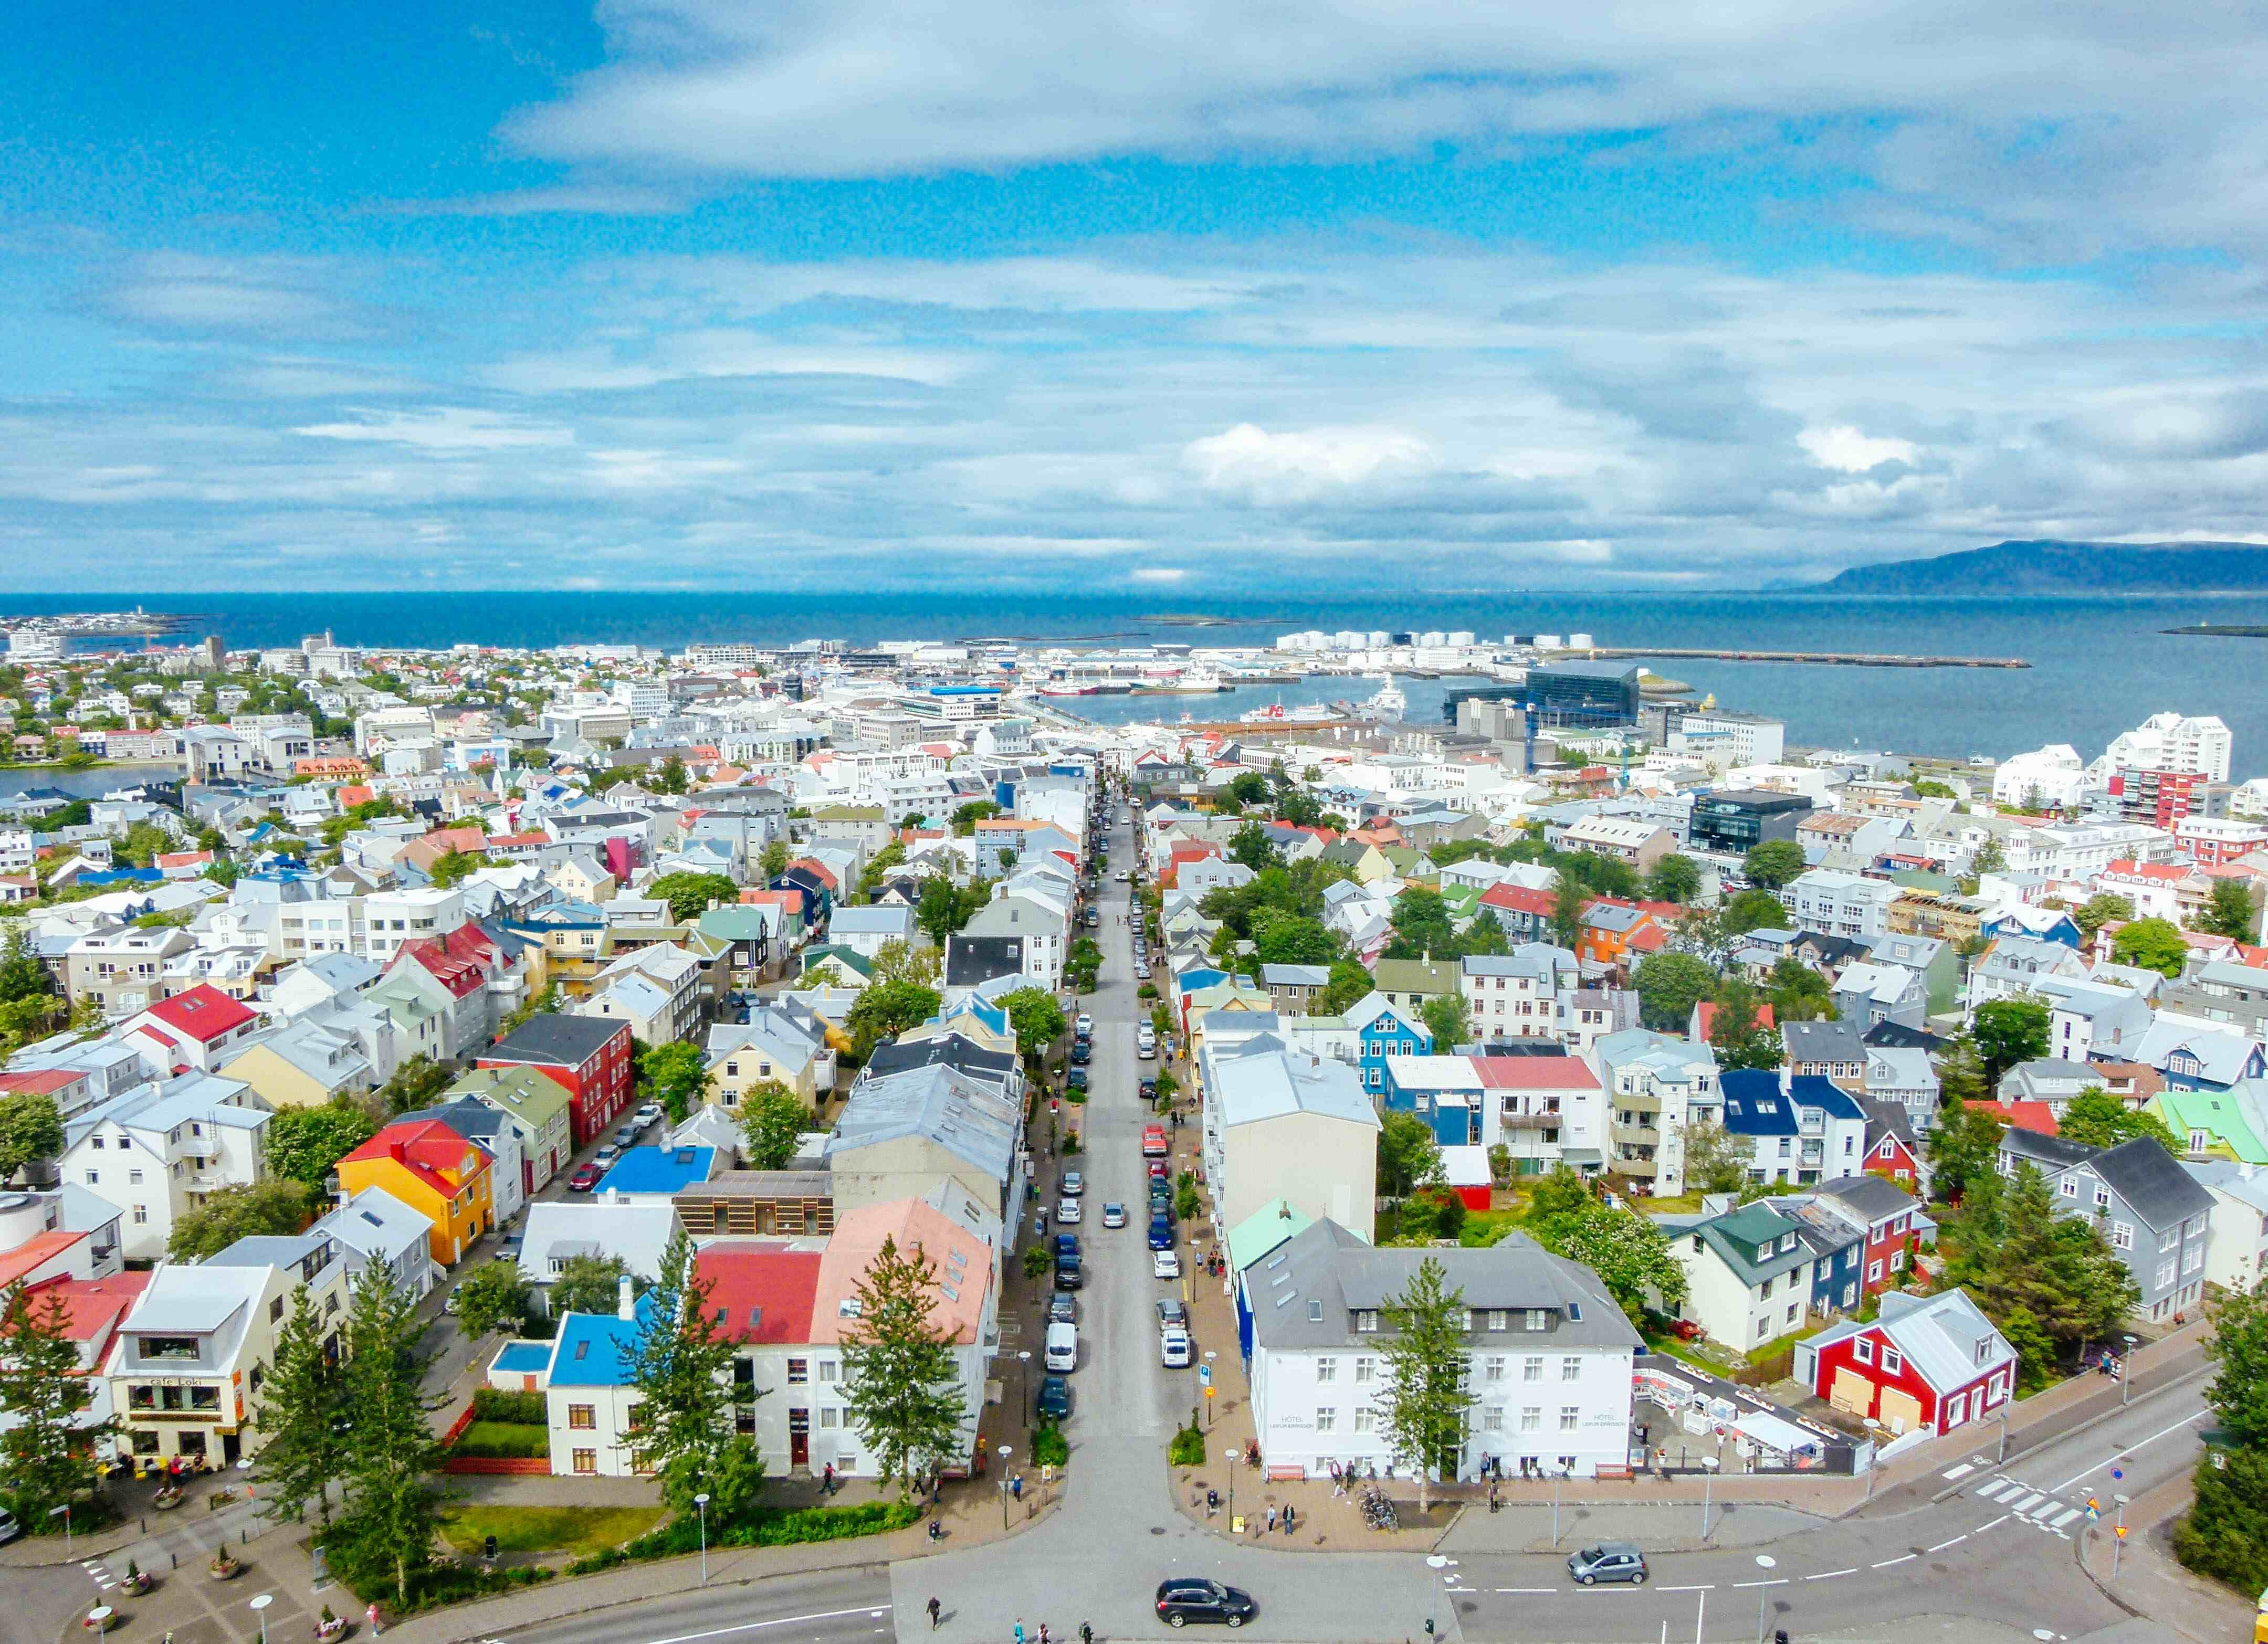 untitled 1 of 1 192 1024x742 - What to See and Do in Reykjavik if You Only Got 24 hours